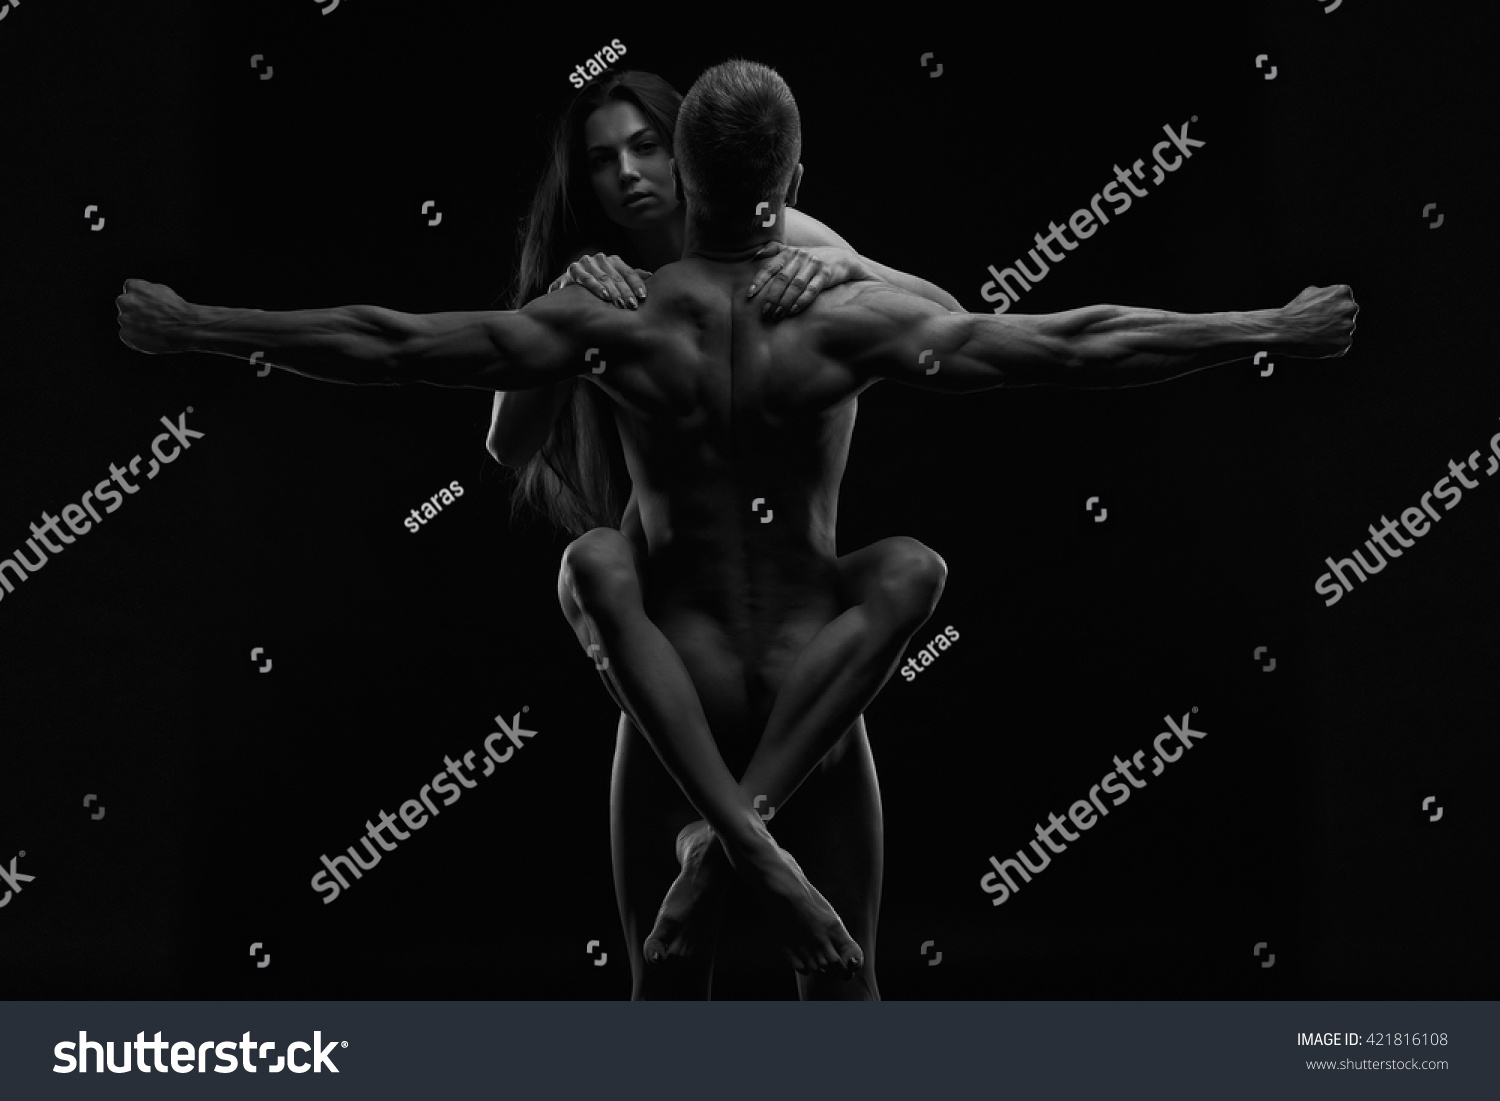 Nude sexy couple dance